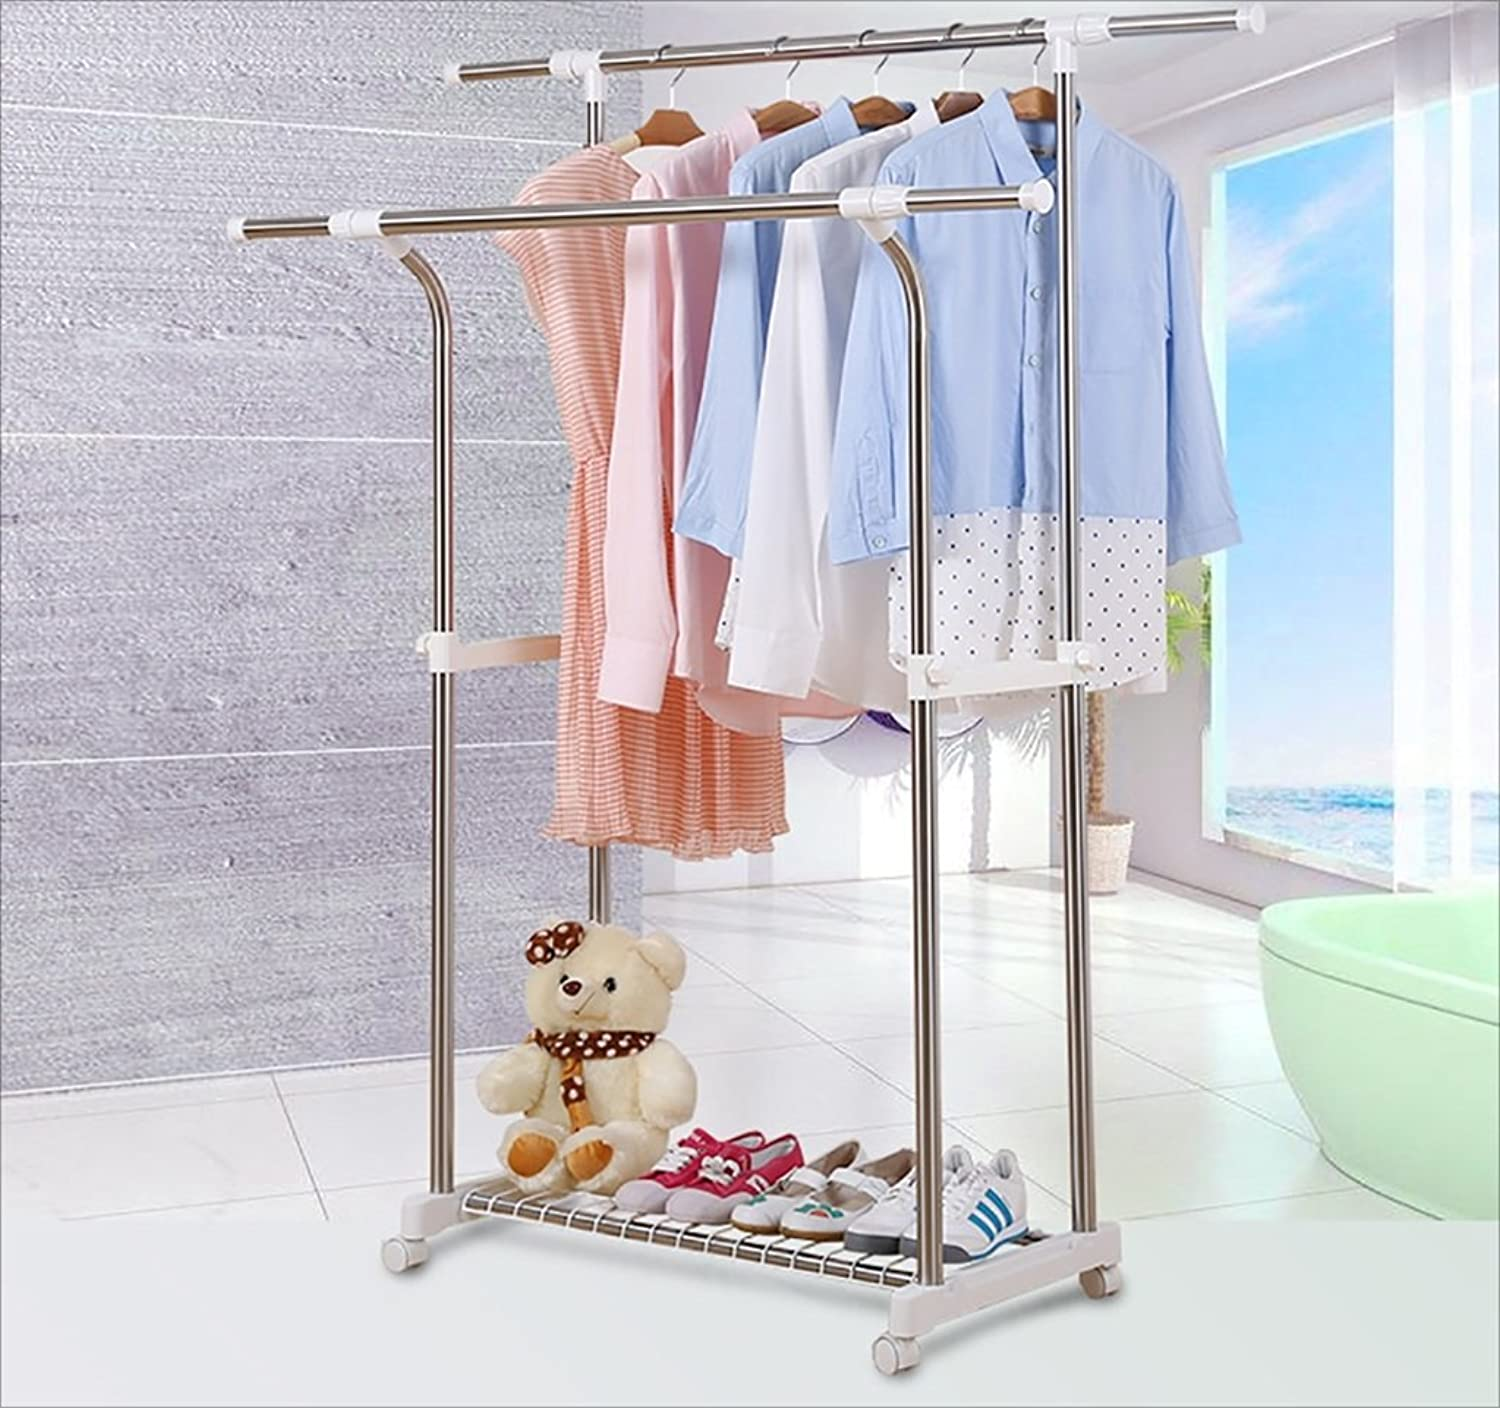 Coat Rack Coat Rack Floor Double Pole Indoor Clothes Rack Stainless Steel Bedroom Simple Mobile Hanging Clothes Hanger (color   A)